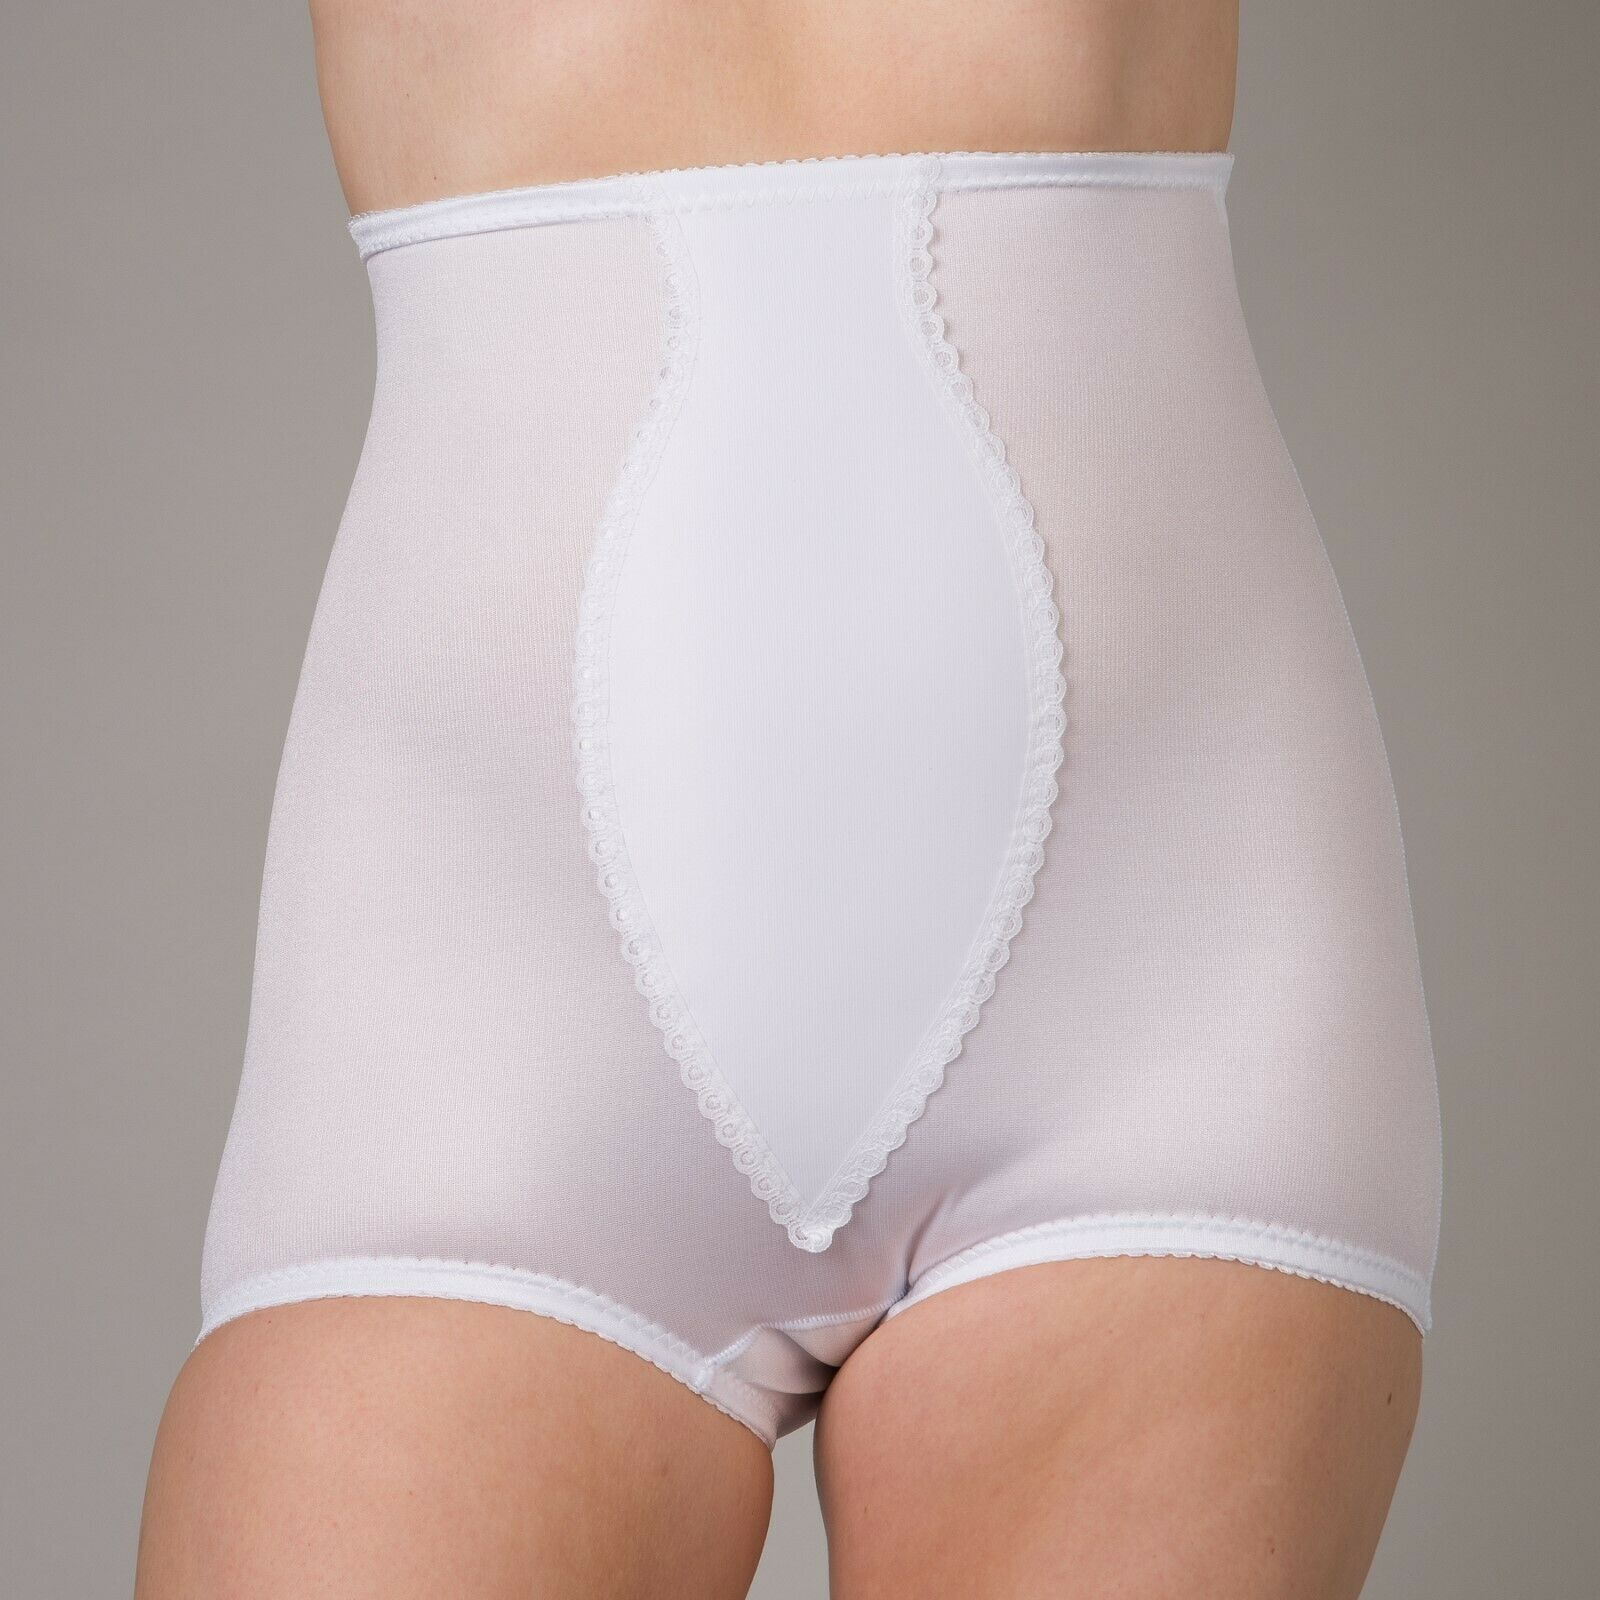 Pretty Form DS20 – Medium Control Girdle NEW Made in UK